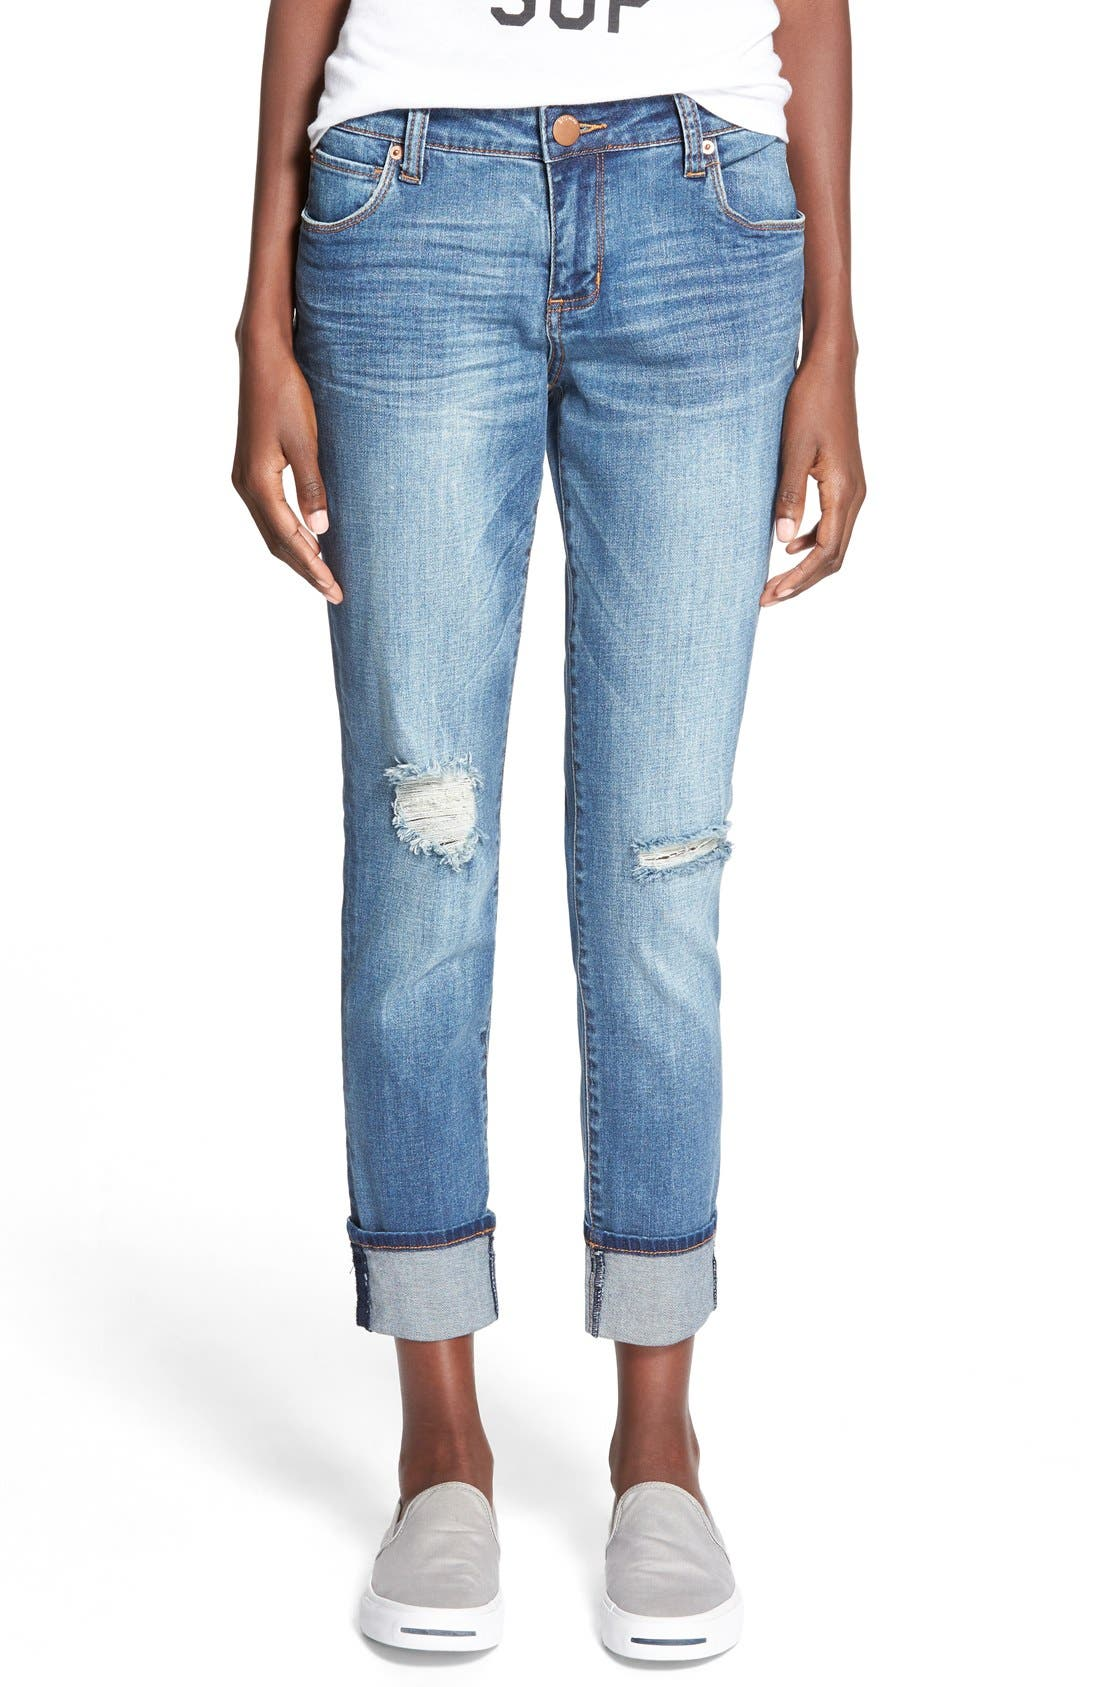 Alternate Image 1 Selected - STS Blue 'Tomboy' High Rise Boyfriend Jeans (Pismo Beach)